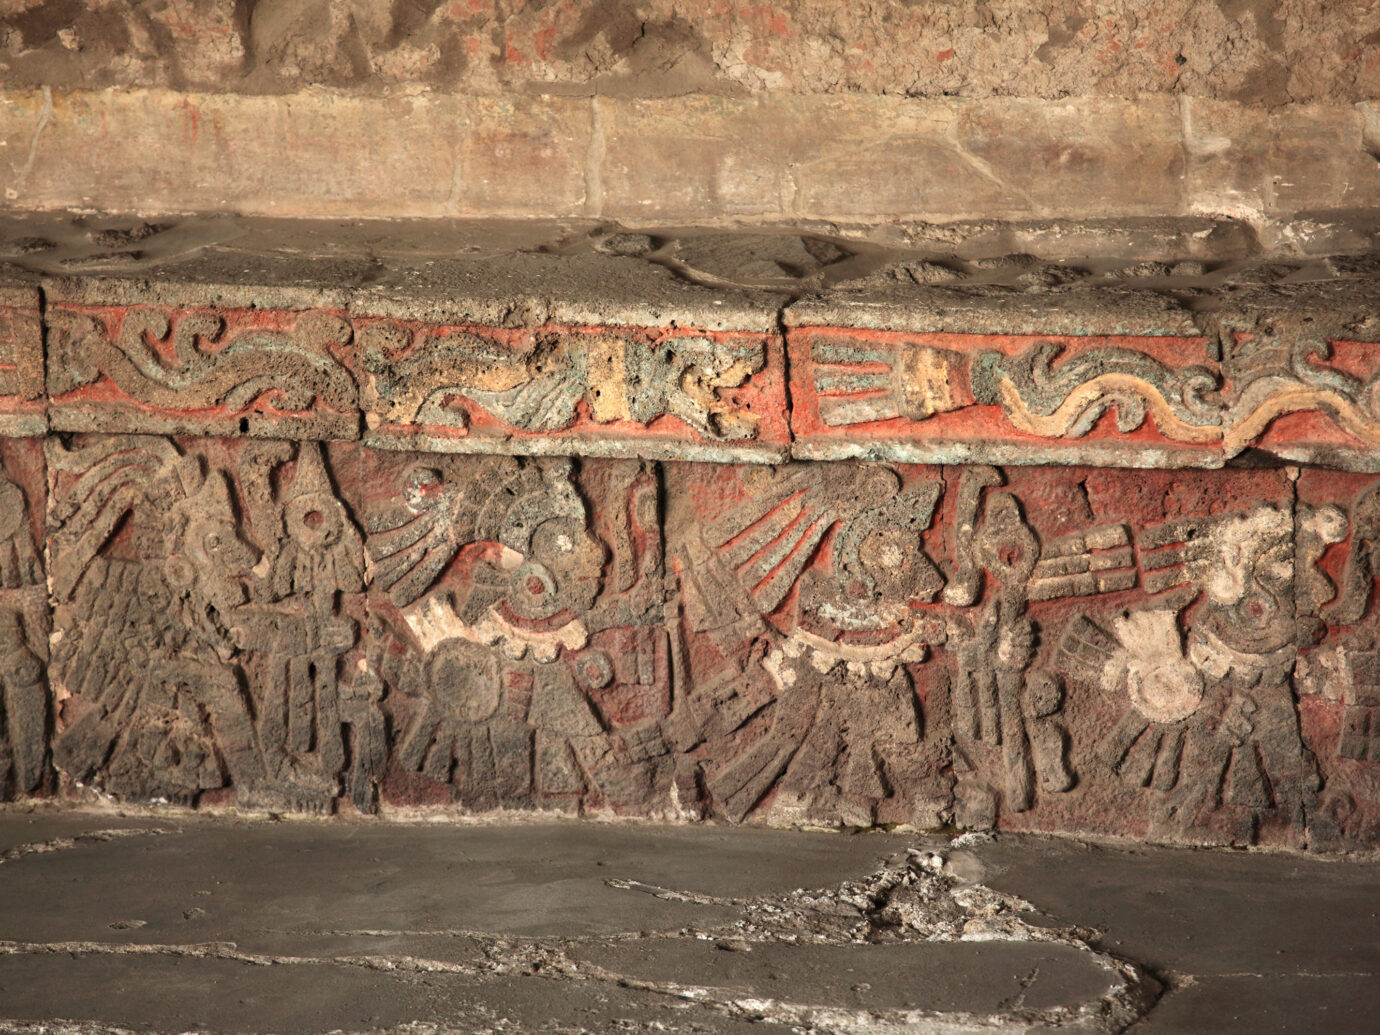 """""""Warriors Relief - Templo Mayor, Mexico CityWith bas relief images carved on stone. The images are painted on a red background.The images depict warriors converging to a ball of straw (heno, in Spanish) called zacatapayoli containing maguey thorns with their blood that were offered as penance."""""""